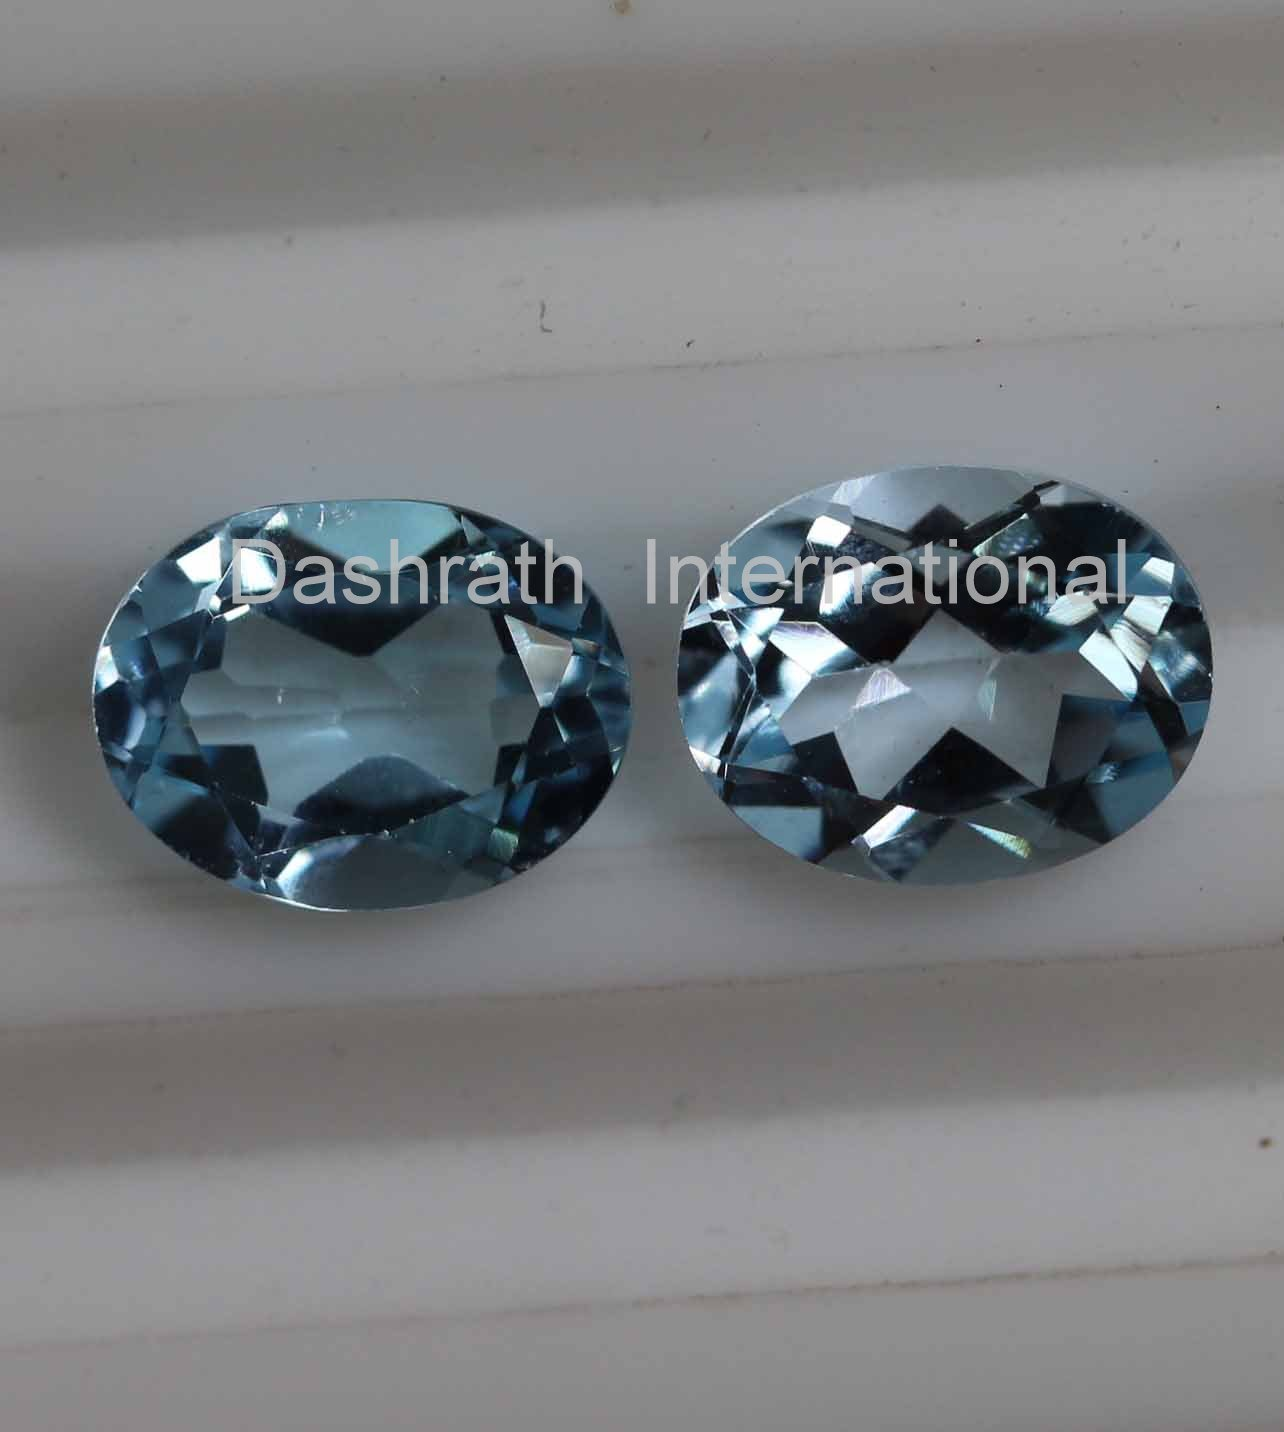 8x10mm  Natural Sky Blue Topaz Faceted Cut Oval  50 Pieces Lot  Top Quality Loose Gemstone